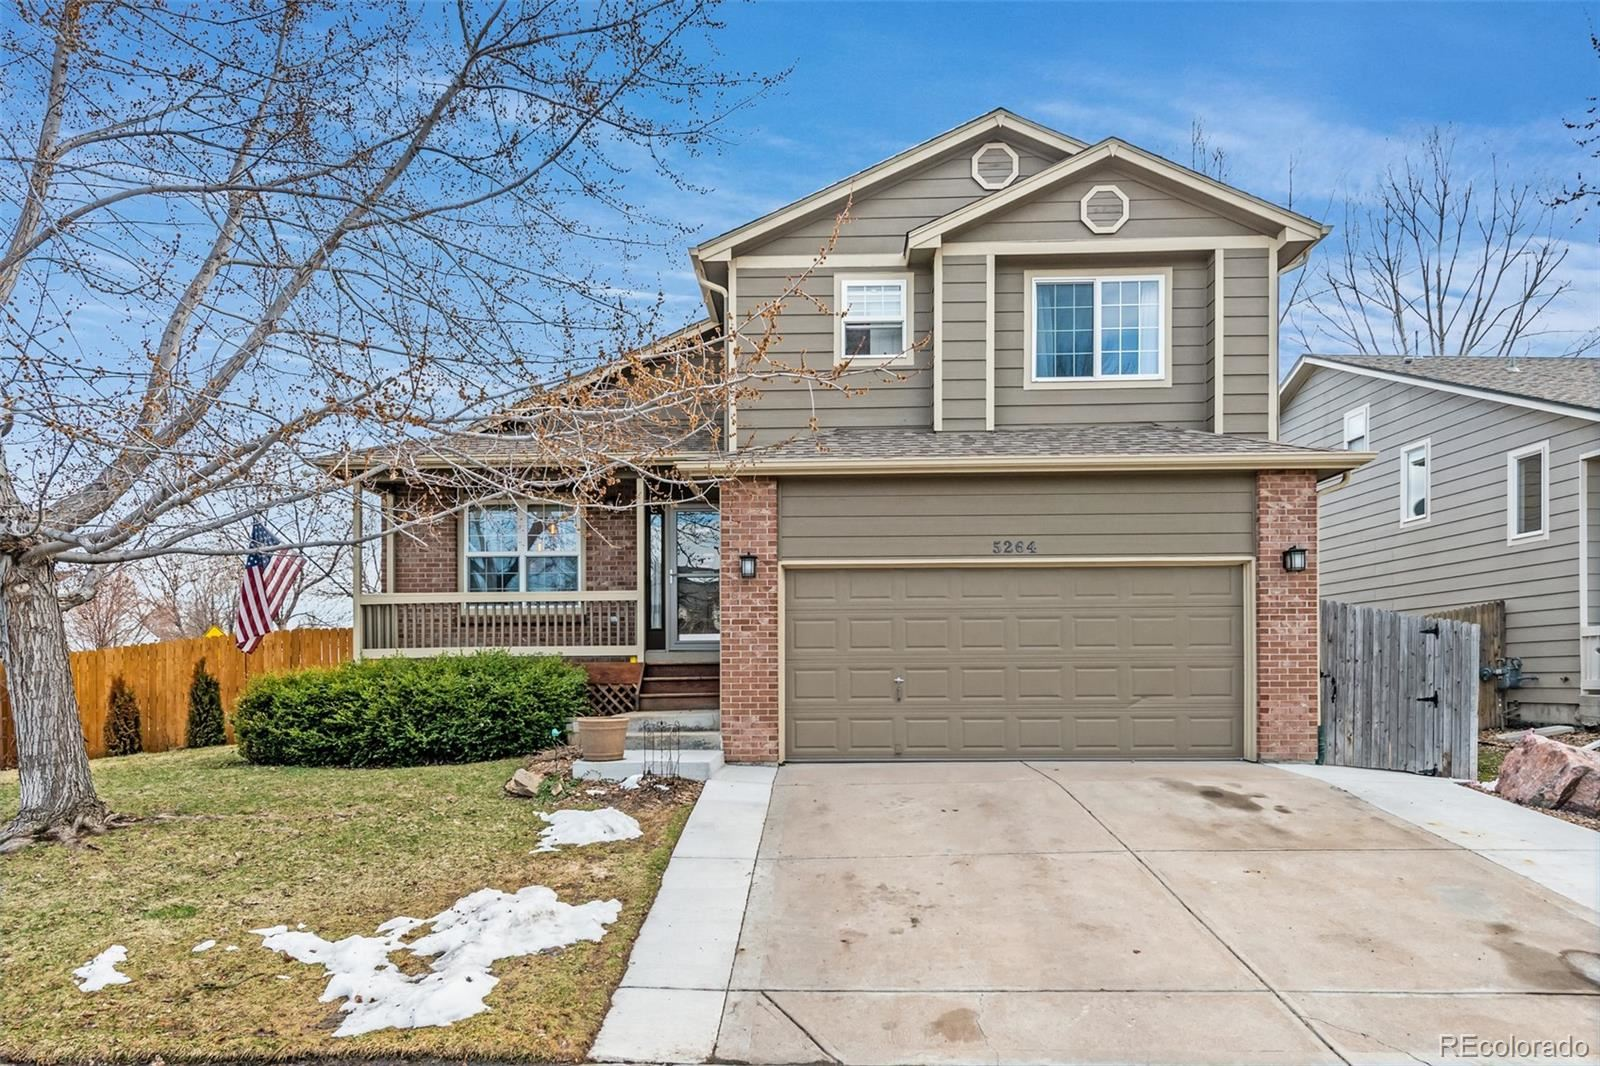 5264 E 129th Place, Thornton, CO 80241 - #: 6683862